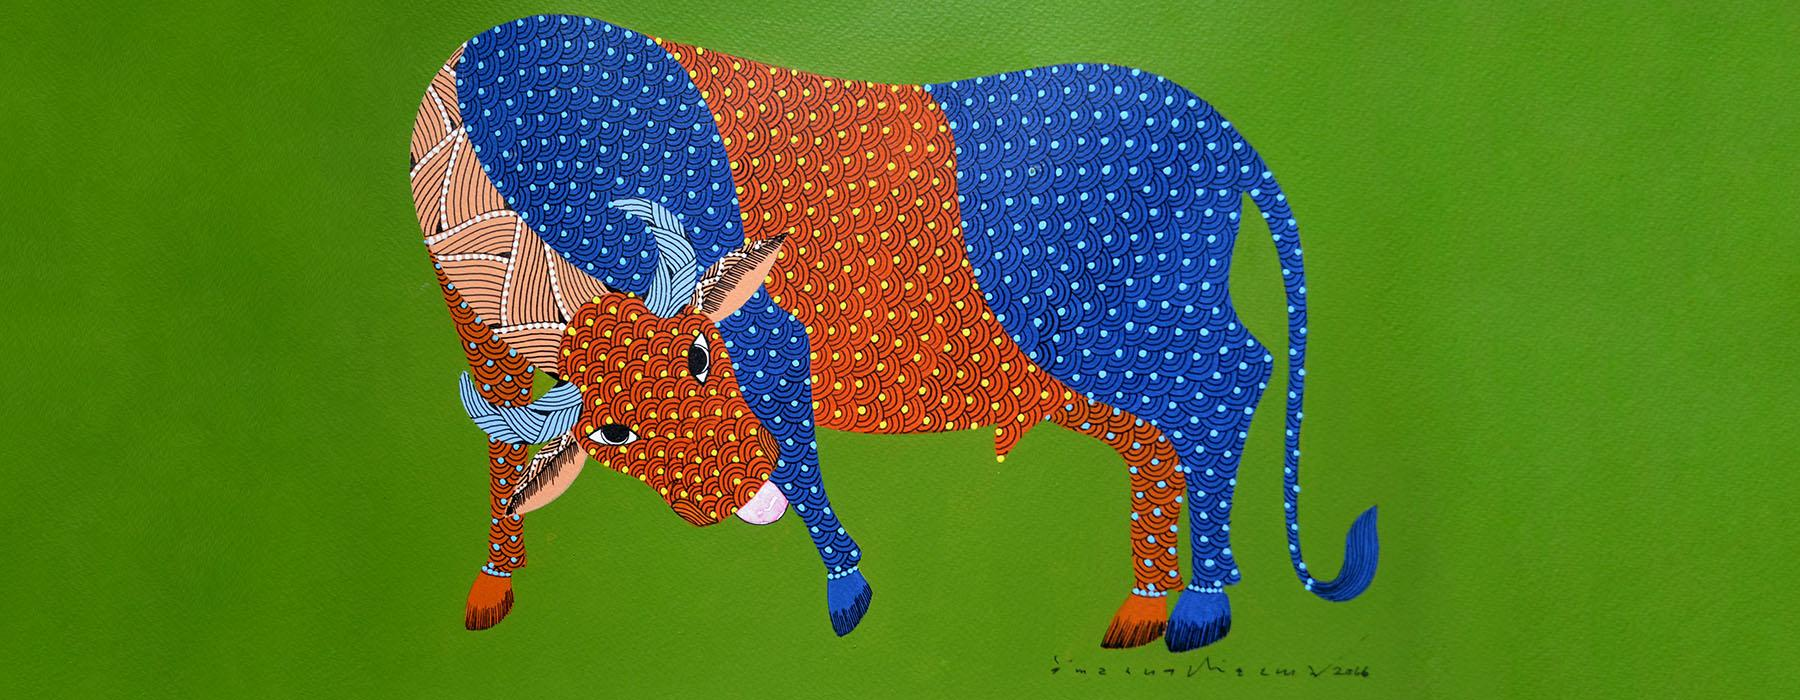 Gond art bull in green and orange